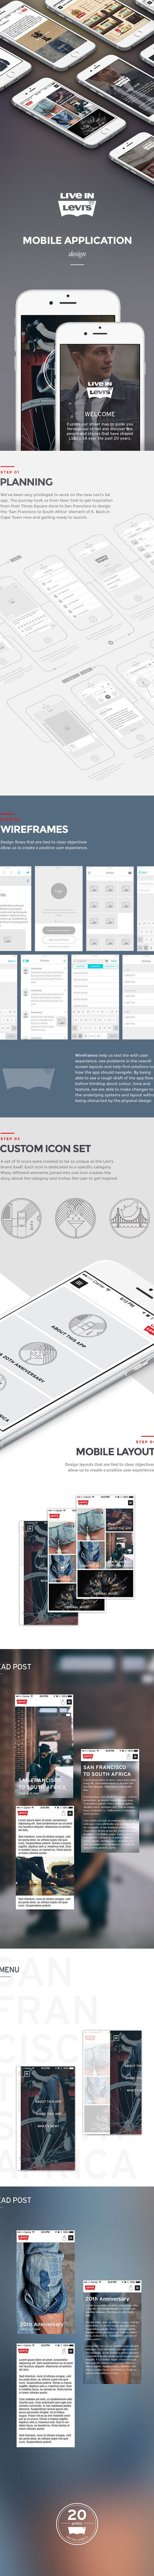 http://www.appdesignserved.co/gallery/Levis-Mobile-App/17575915